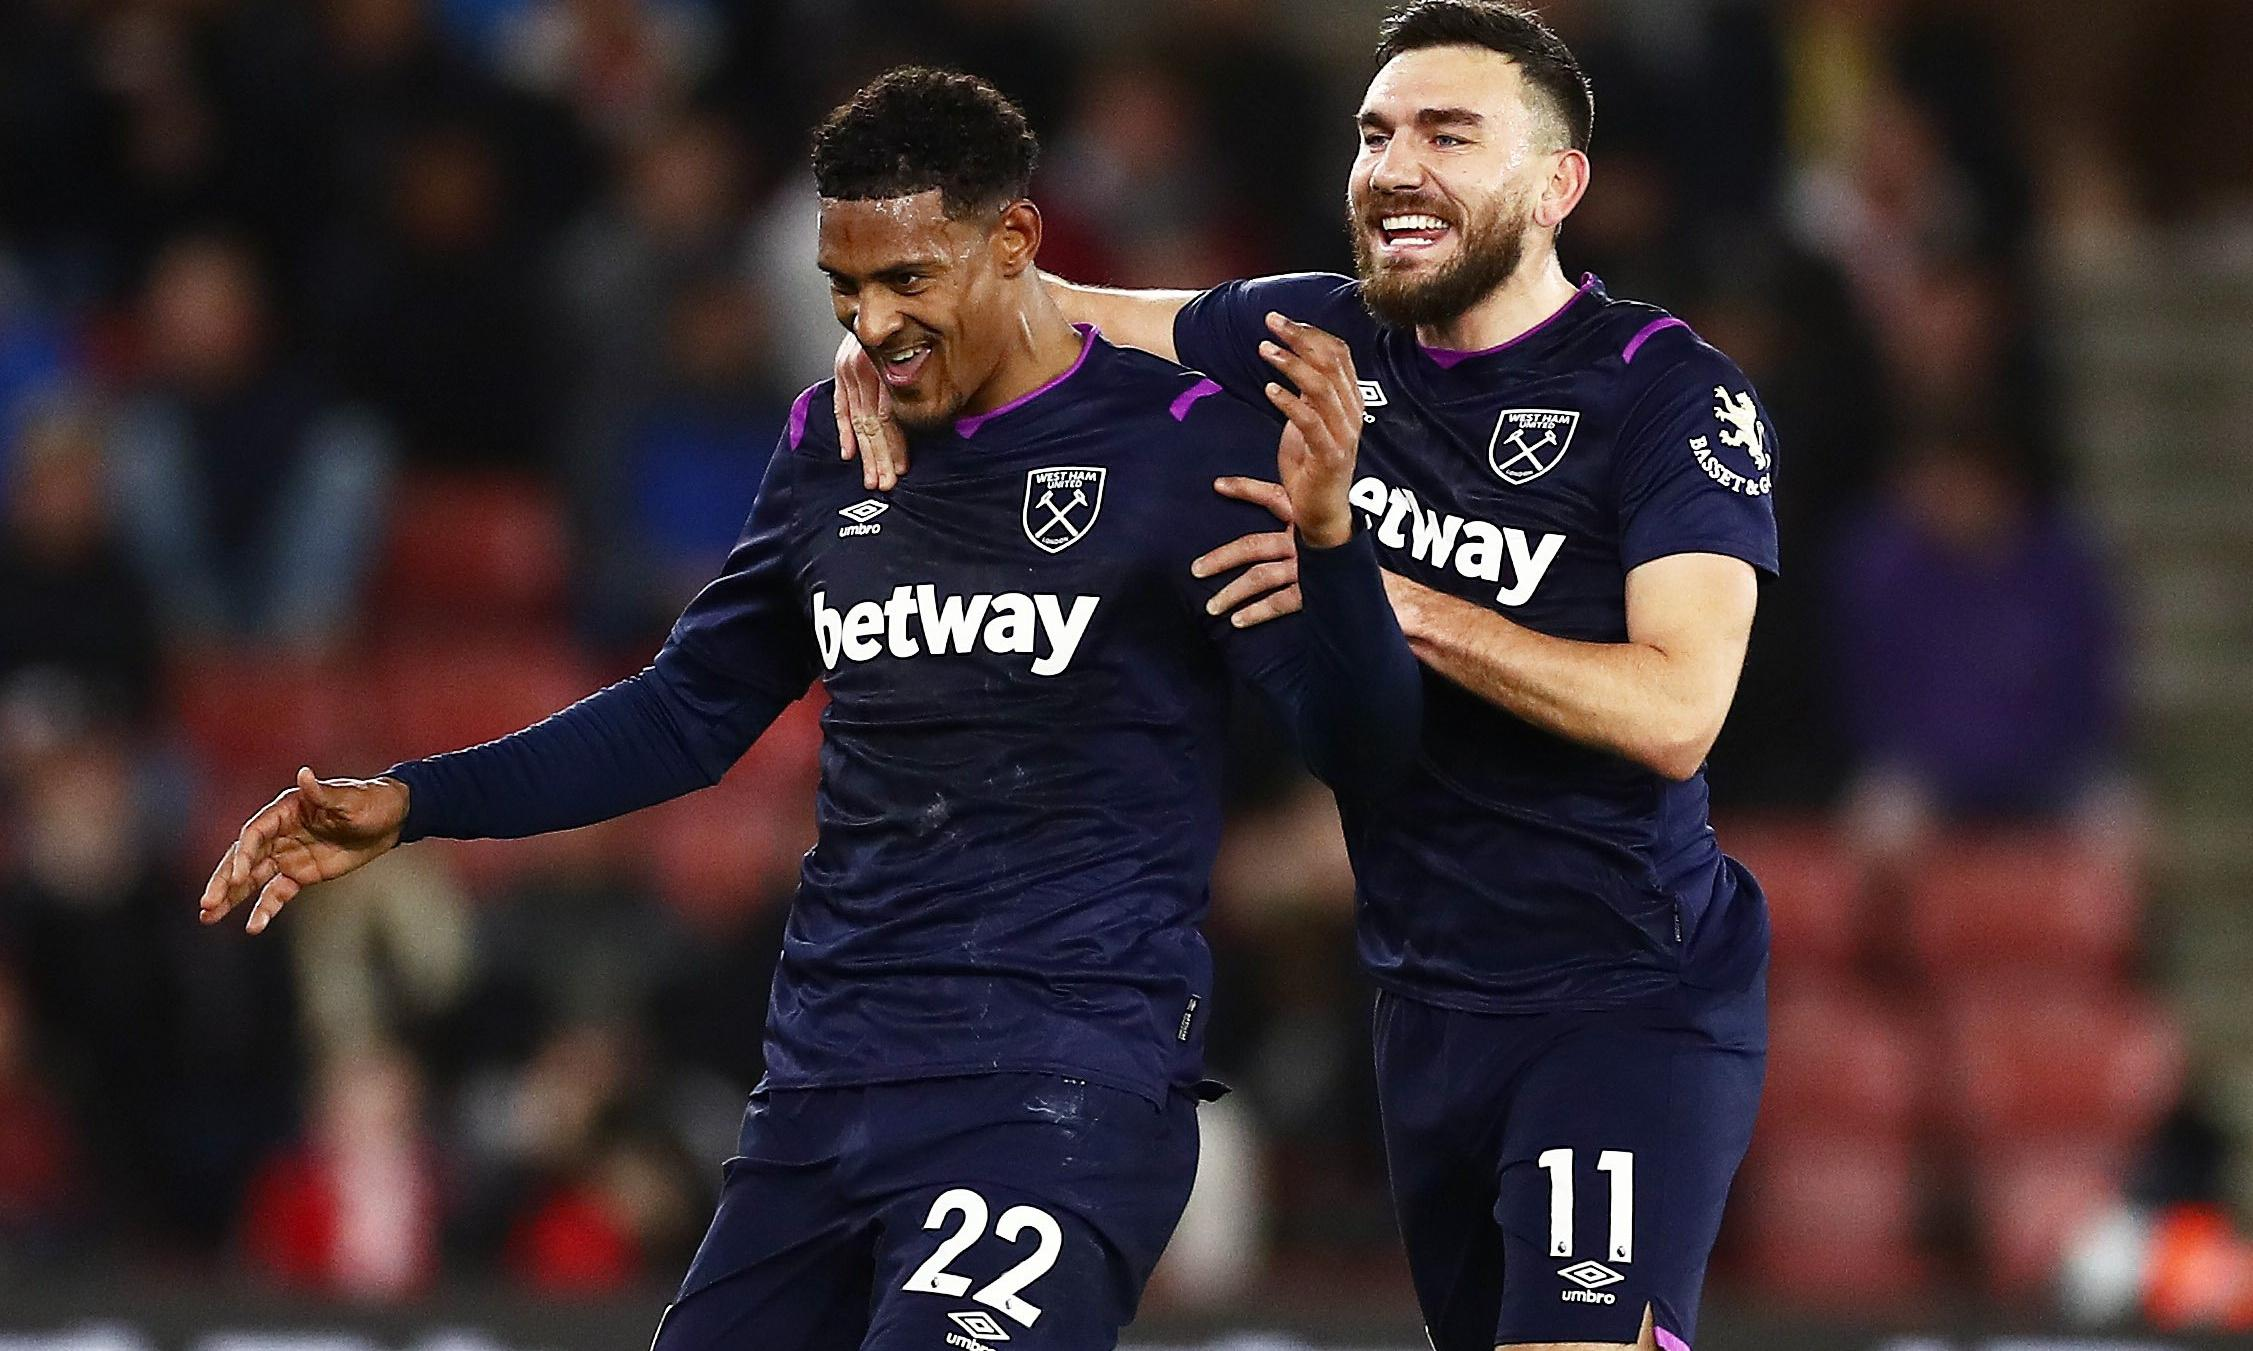 Sébastien Haller fires West Ham to crucial victory over Southampton